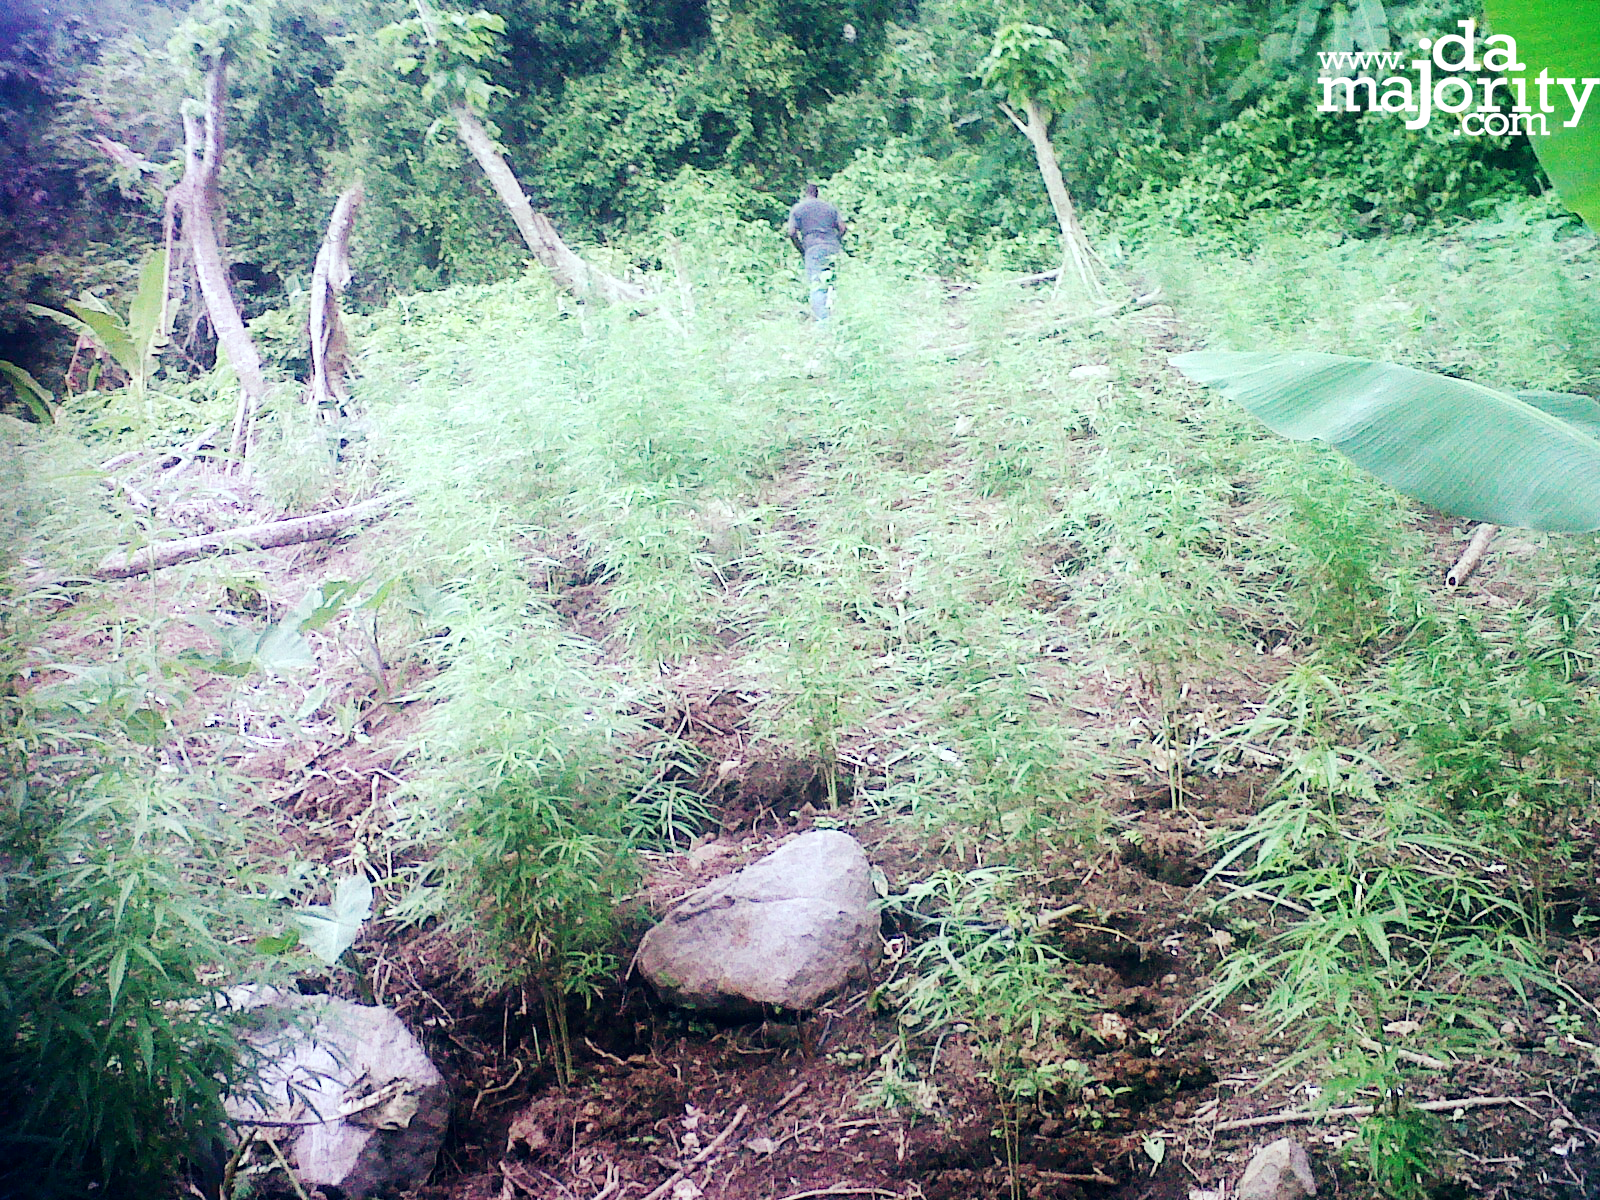 St Lucia News : 186 Marijuana Plants destroyed at Des Barras, Babonneau